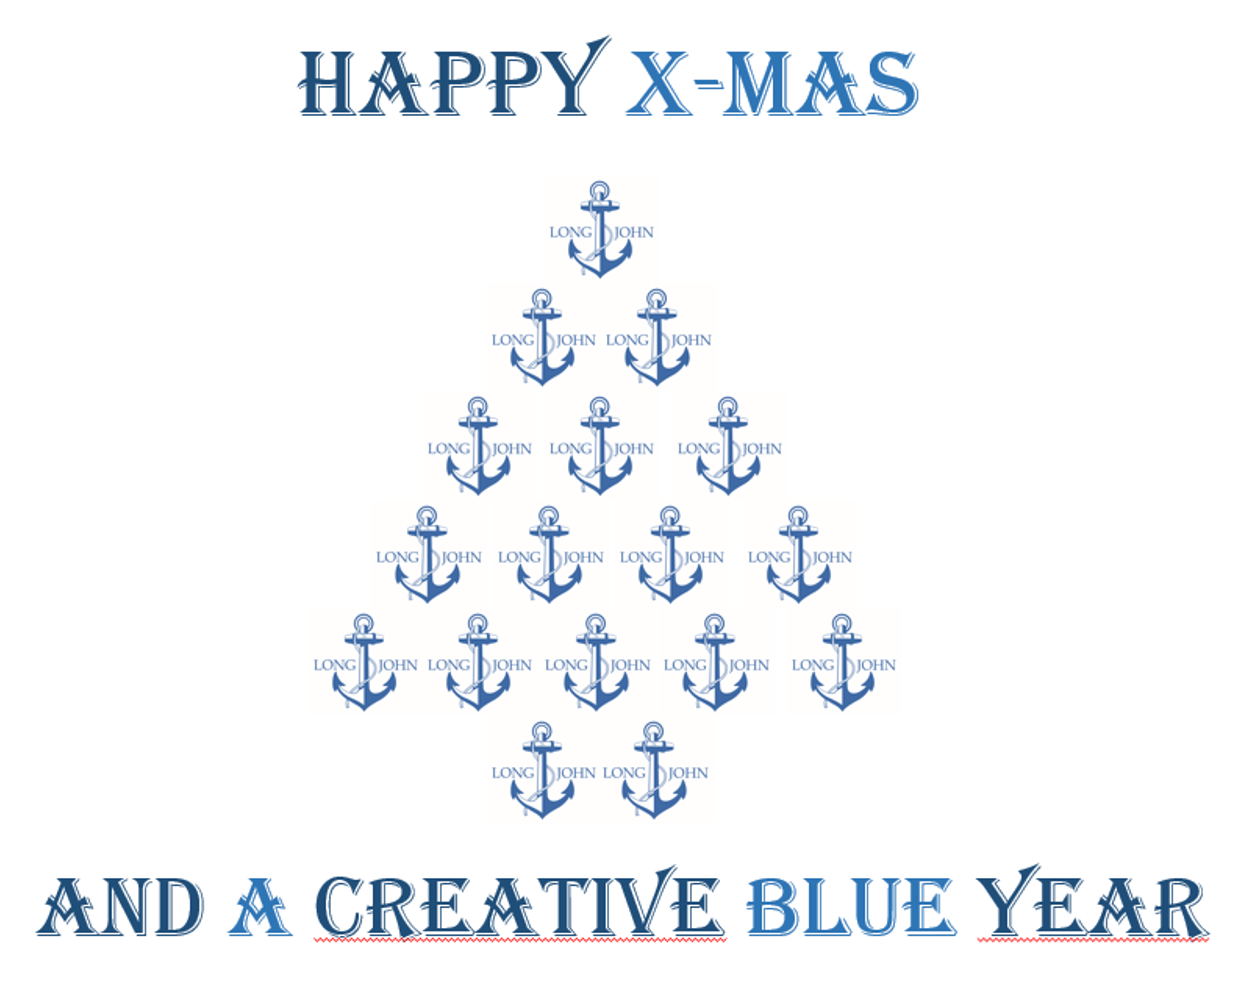 long john denim blog x-mas 2015